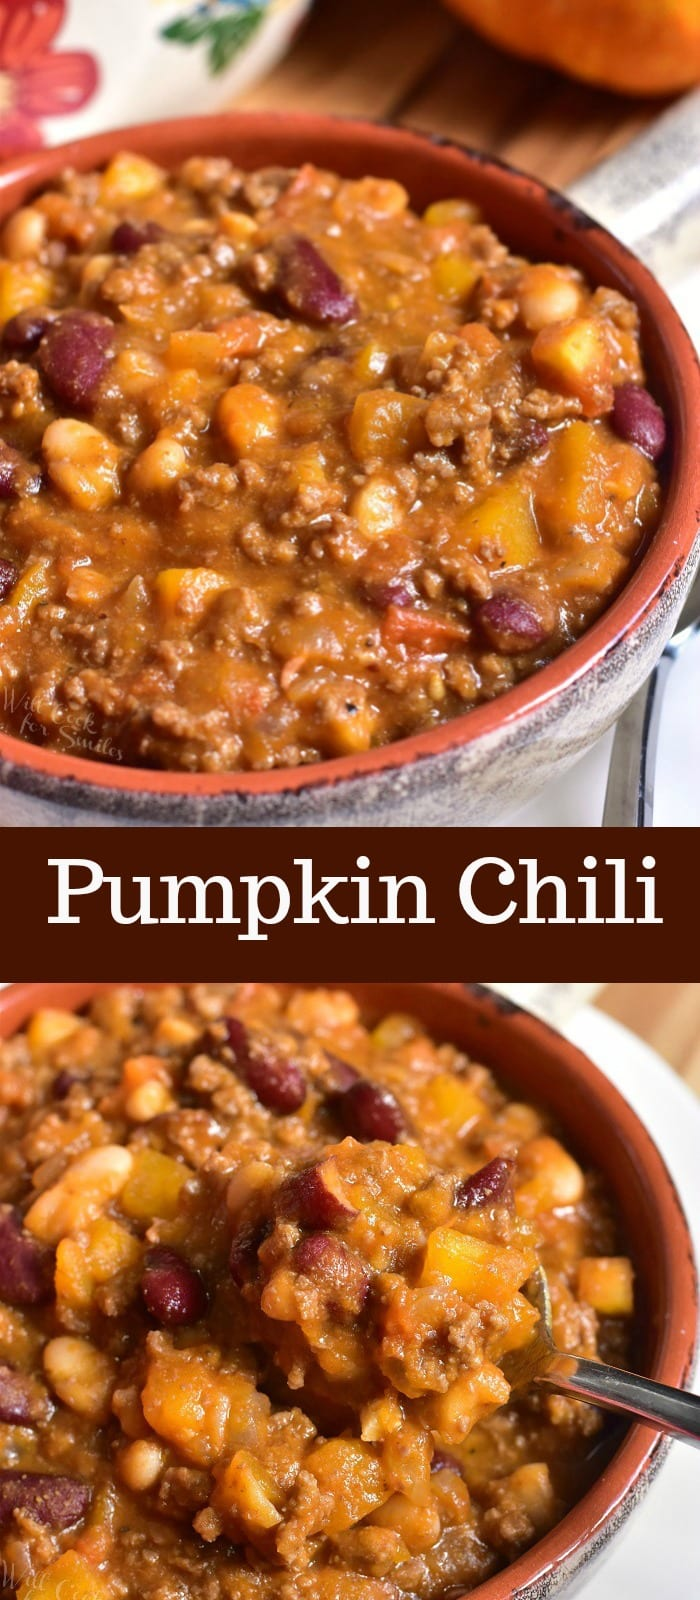 Pumpkin Chili. Seasonal twist on a classic chili recipe. This beef chili is made with two types of beans, veggies, and a combination of fresh pumpkin and pumpkin puree. #chili #beefchili #pumpkinchili #groundbeef